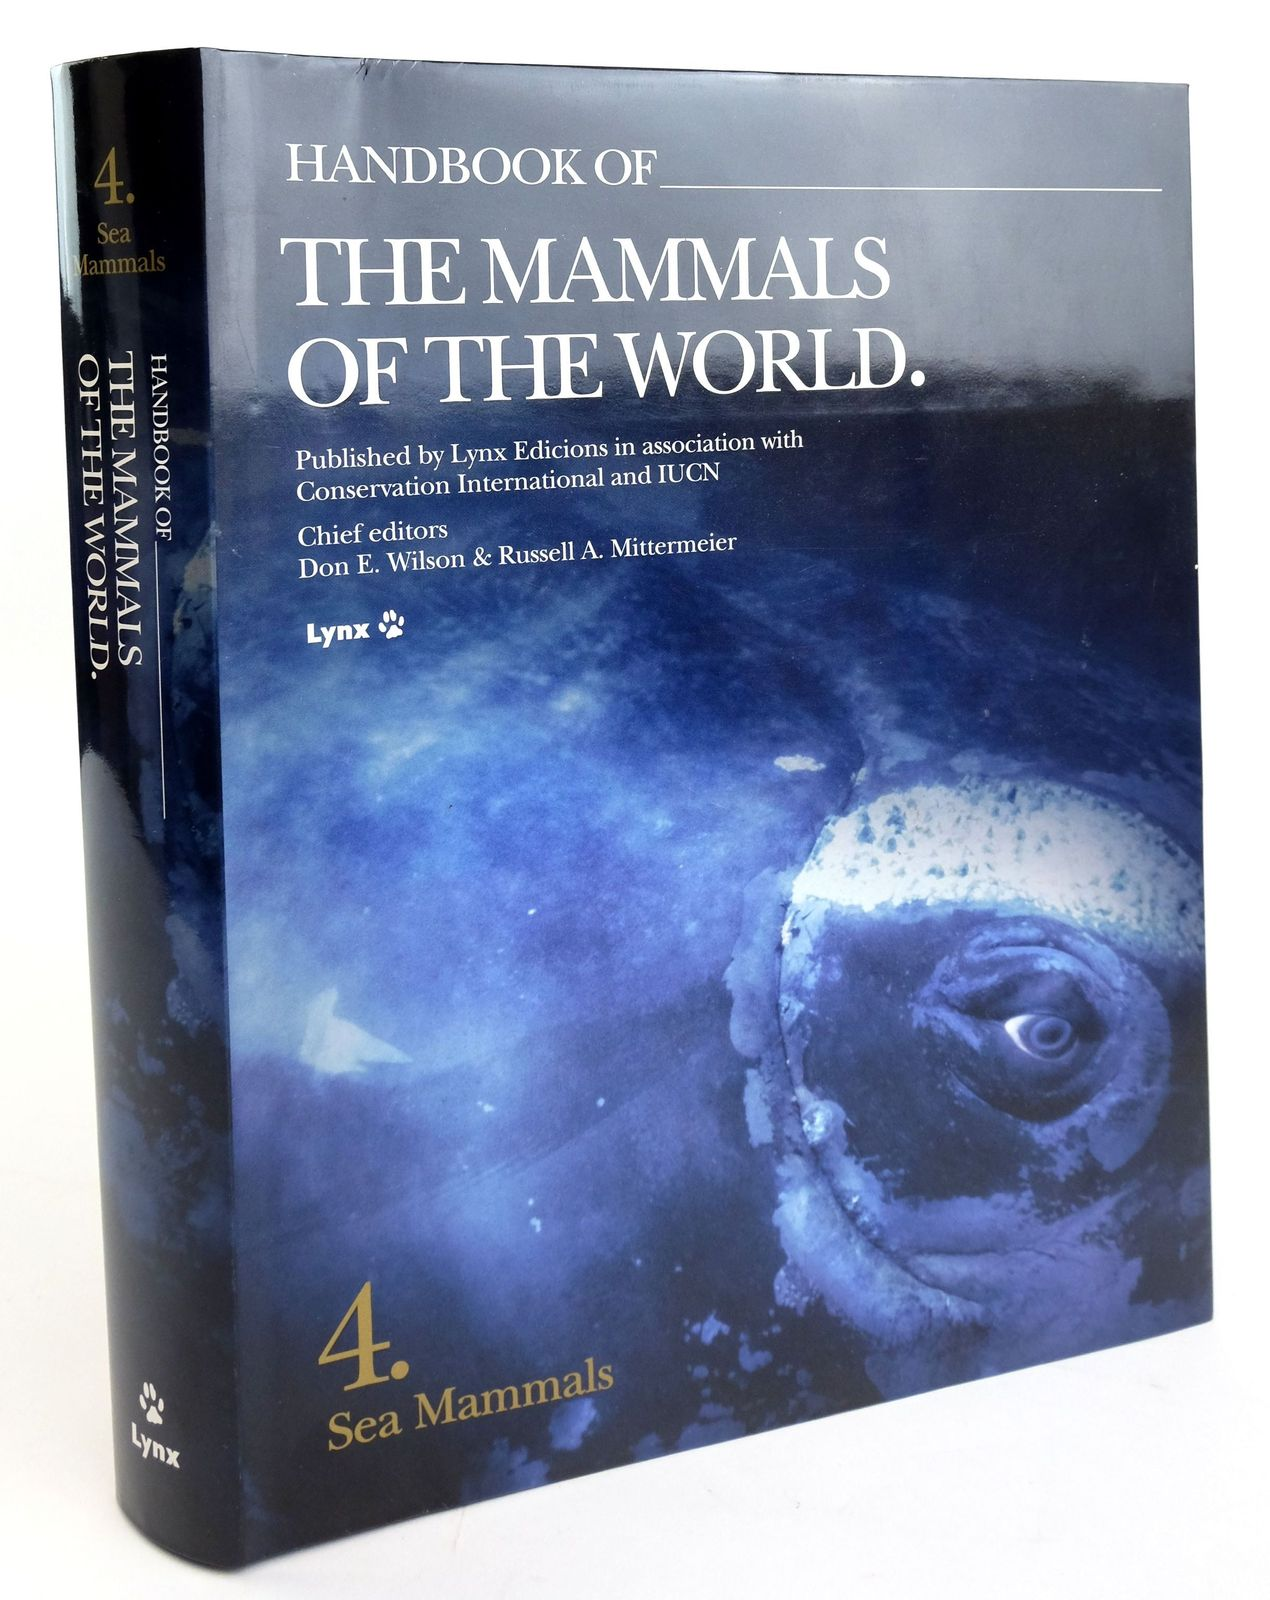 Photo of HANDBOOK OF THE MAMMALS OF THE WORLD 4. SEA MAMMALS- Stock Number: 1820159